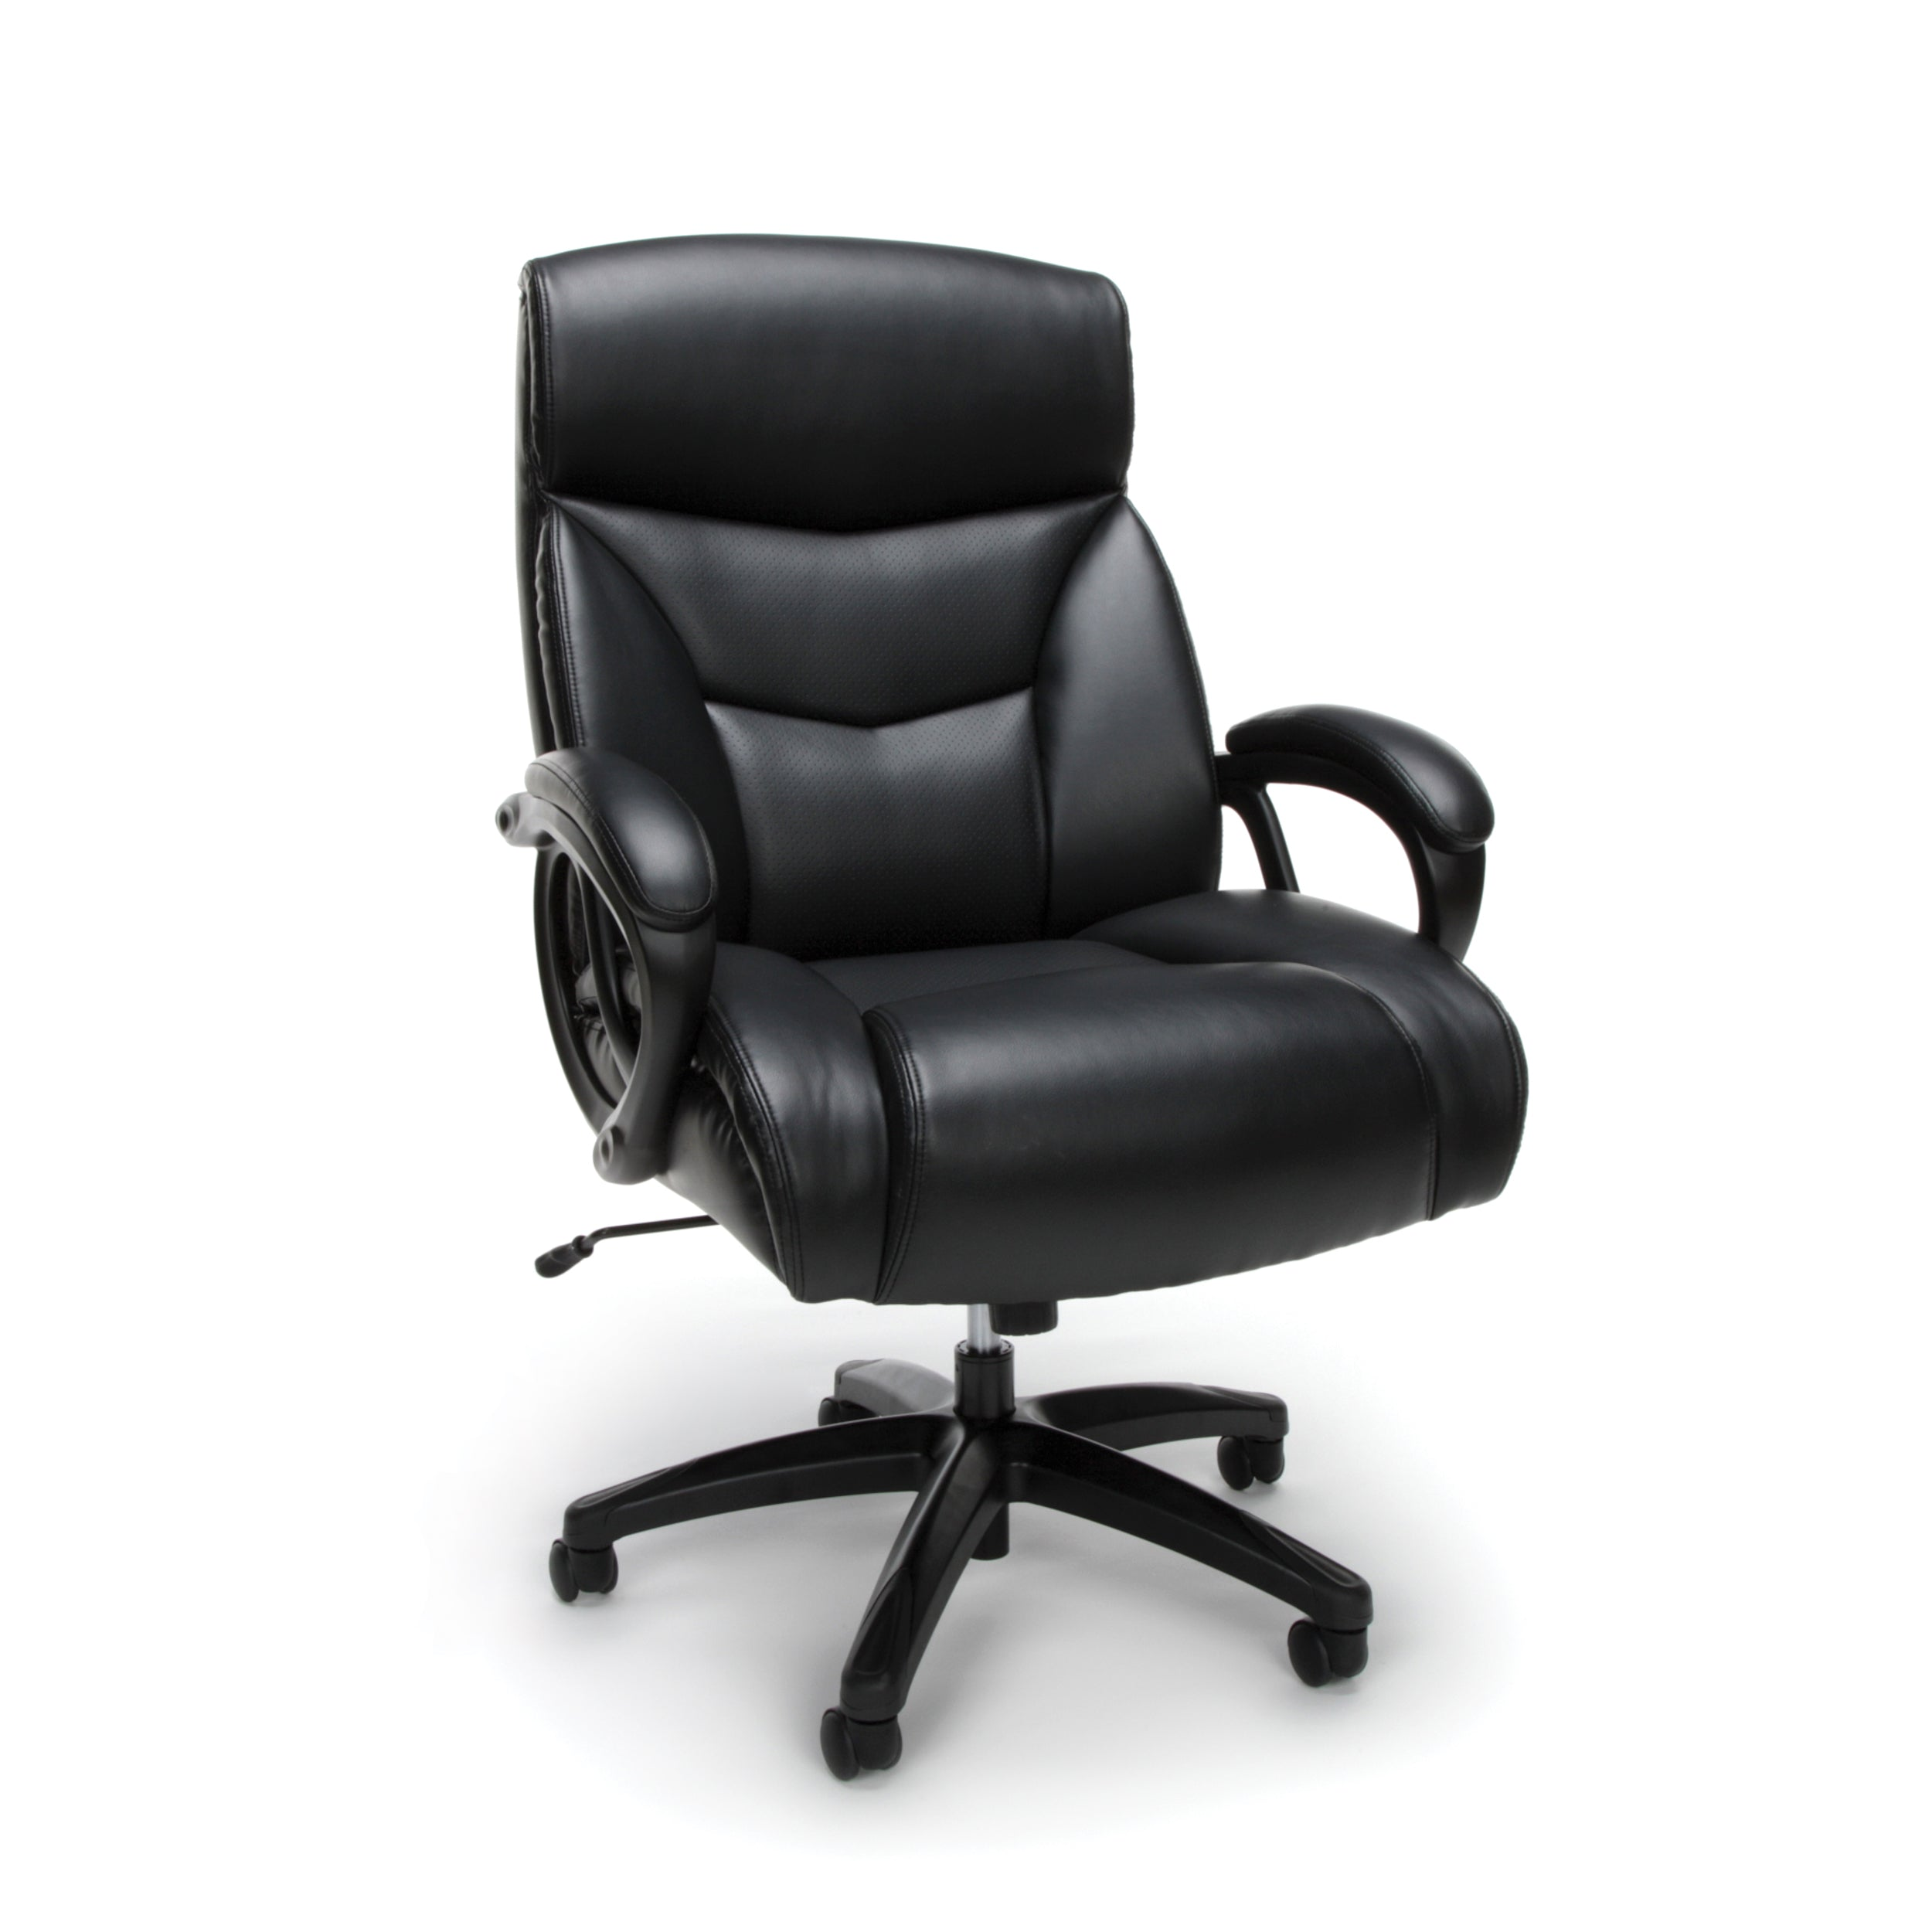 Model ESS-6040 Essentials by OFM Big & Tall Leather Executive Chair